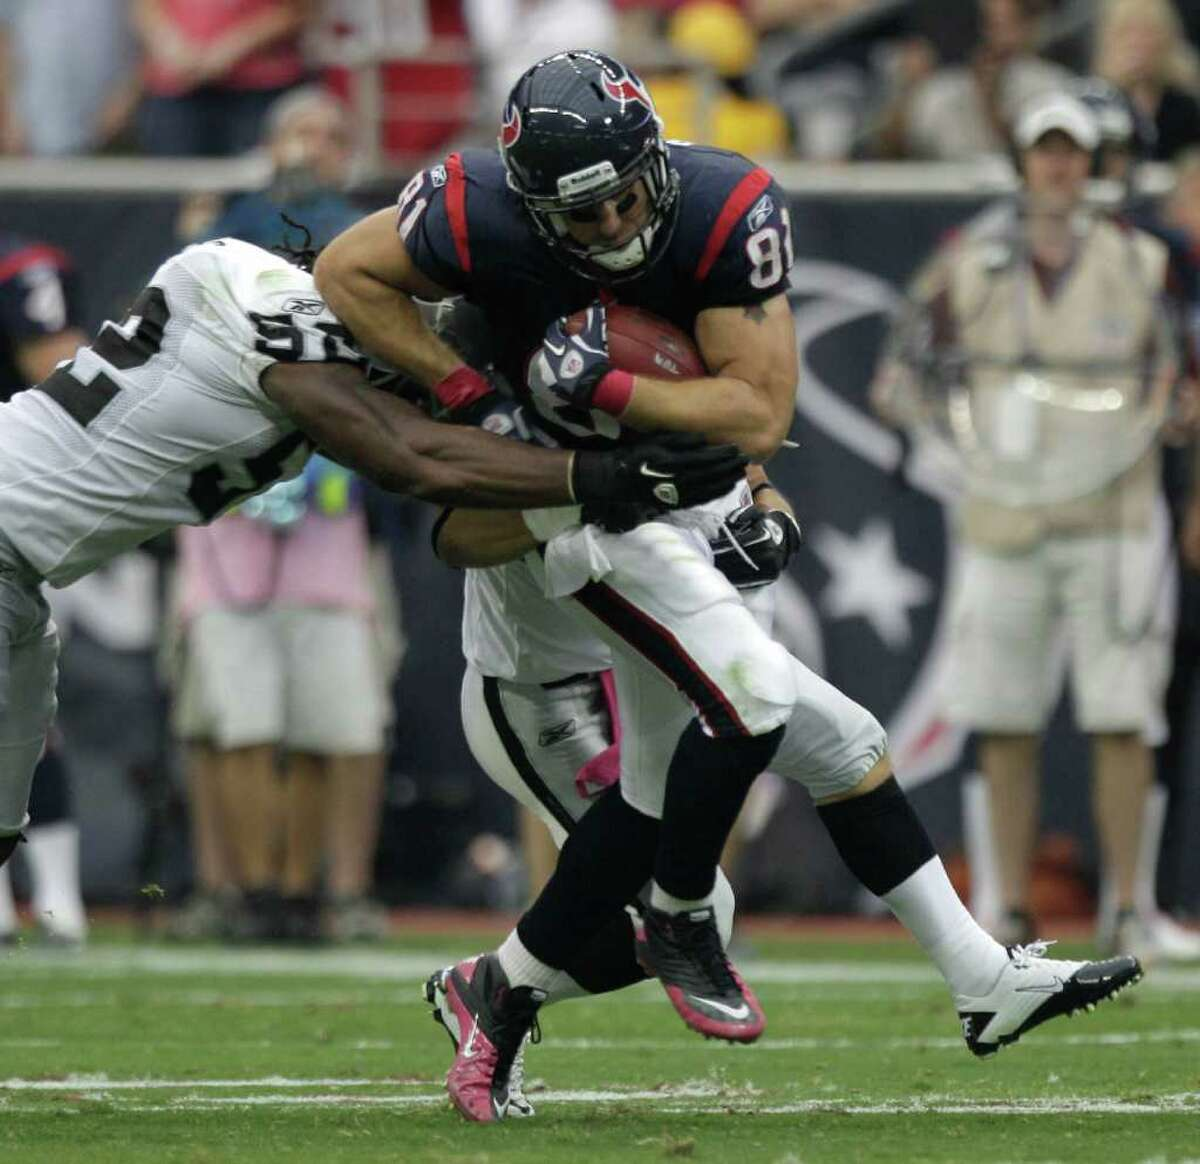 Brett coomer: Chronicle XXXXXXX: Houston Texans tight end Owen Daniels (81) tries to keep his feet under him as Oakland Raiders linebacker Travis Goethel (50) tries to tackle him during the second quarter of an NFL football game at Reliant Stadium on Sunday, Oct. 9, 2011, in Houston. ( Brett Coomer / Houston Chronicle )